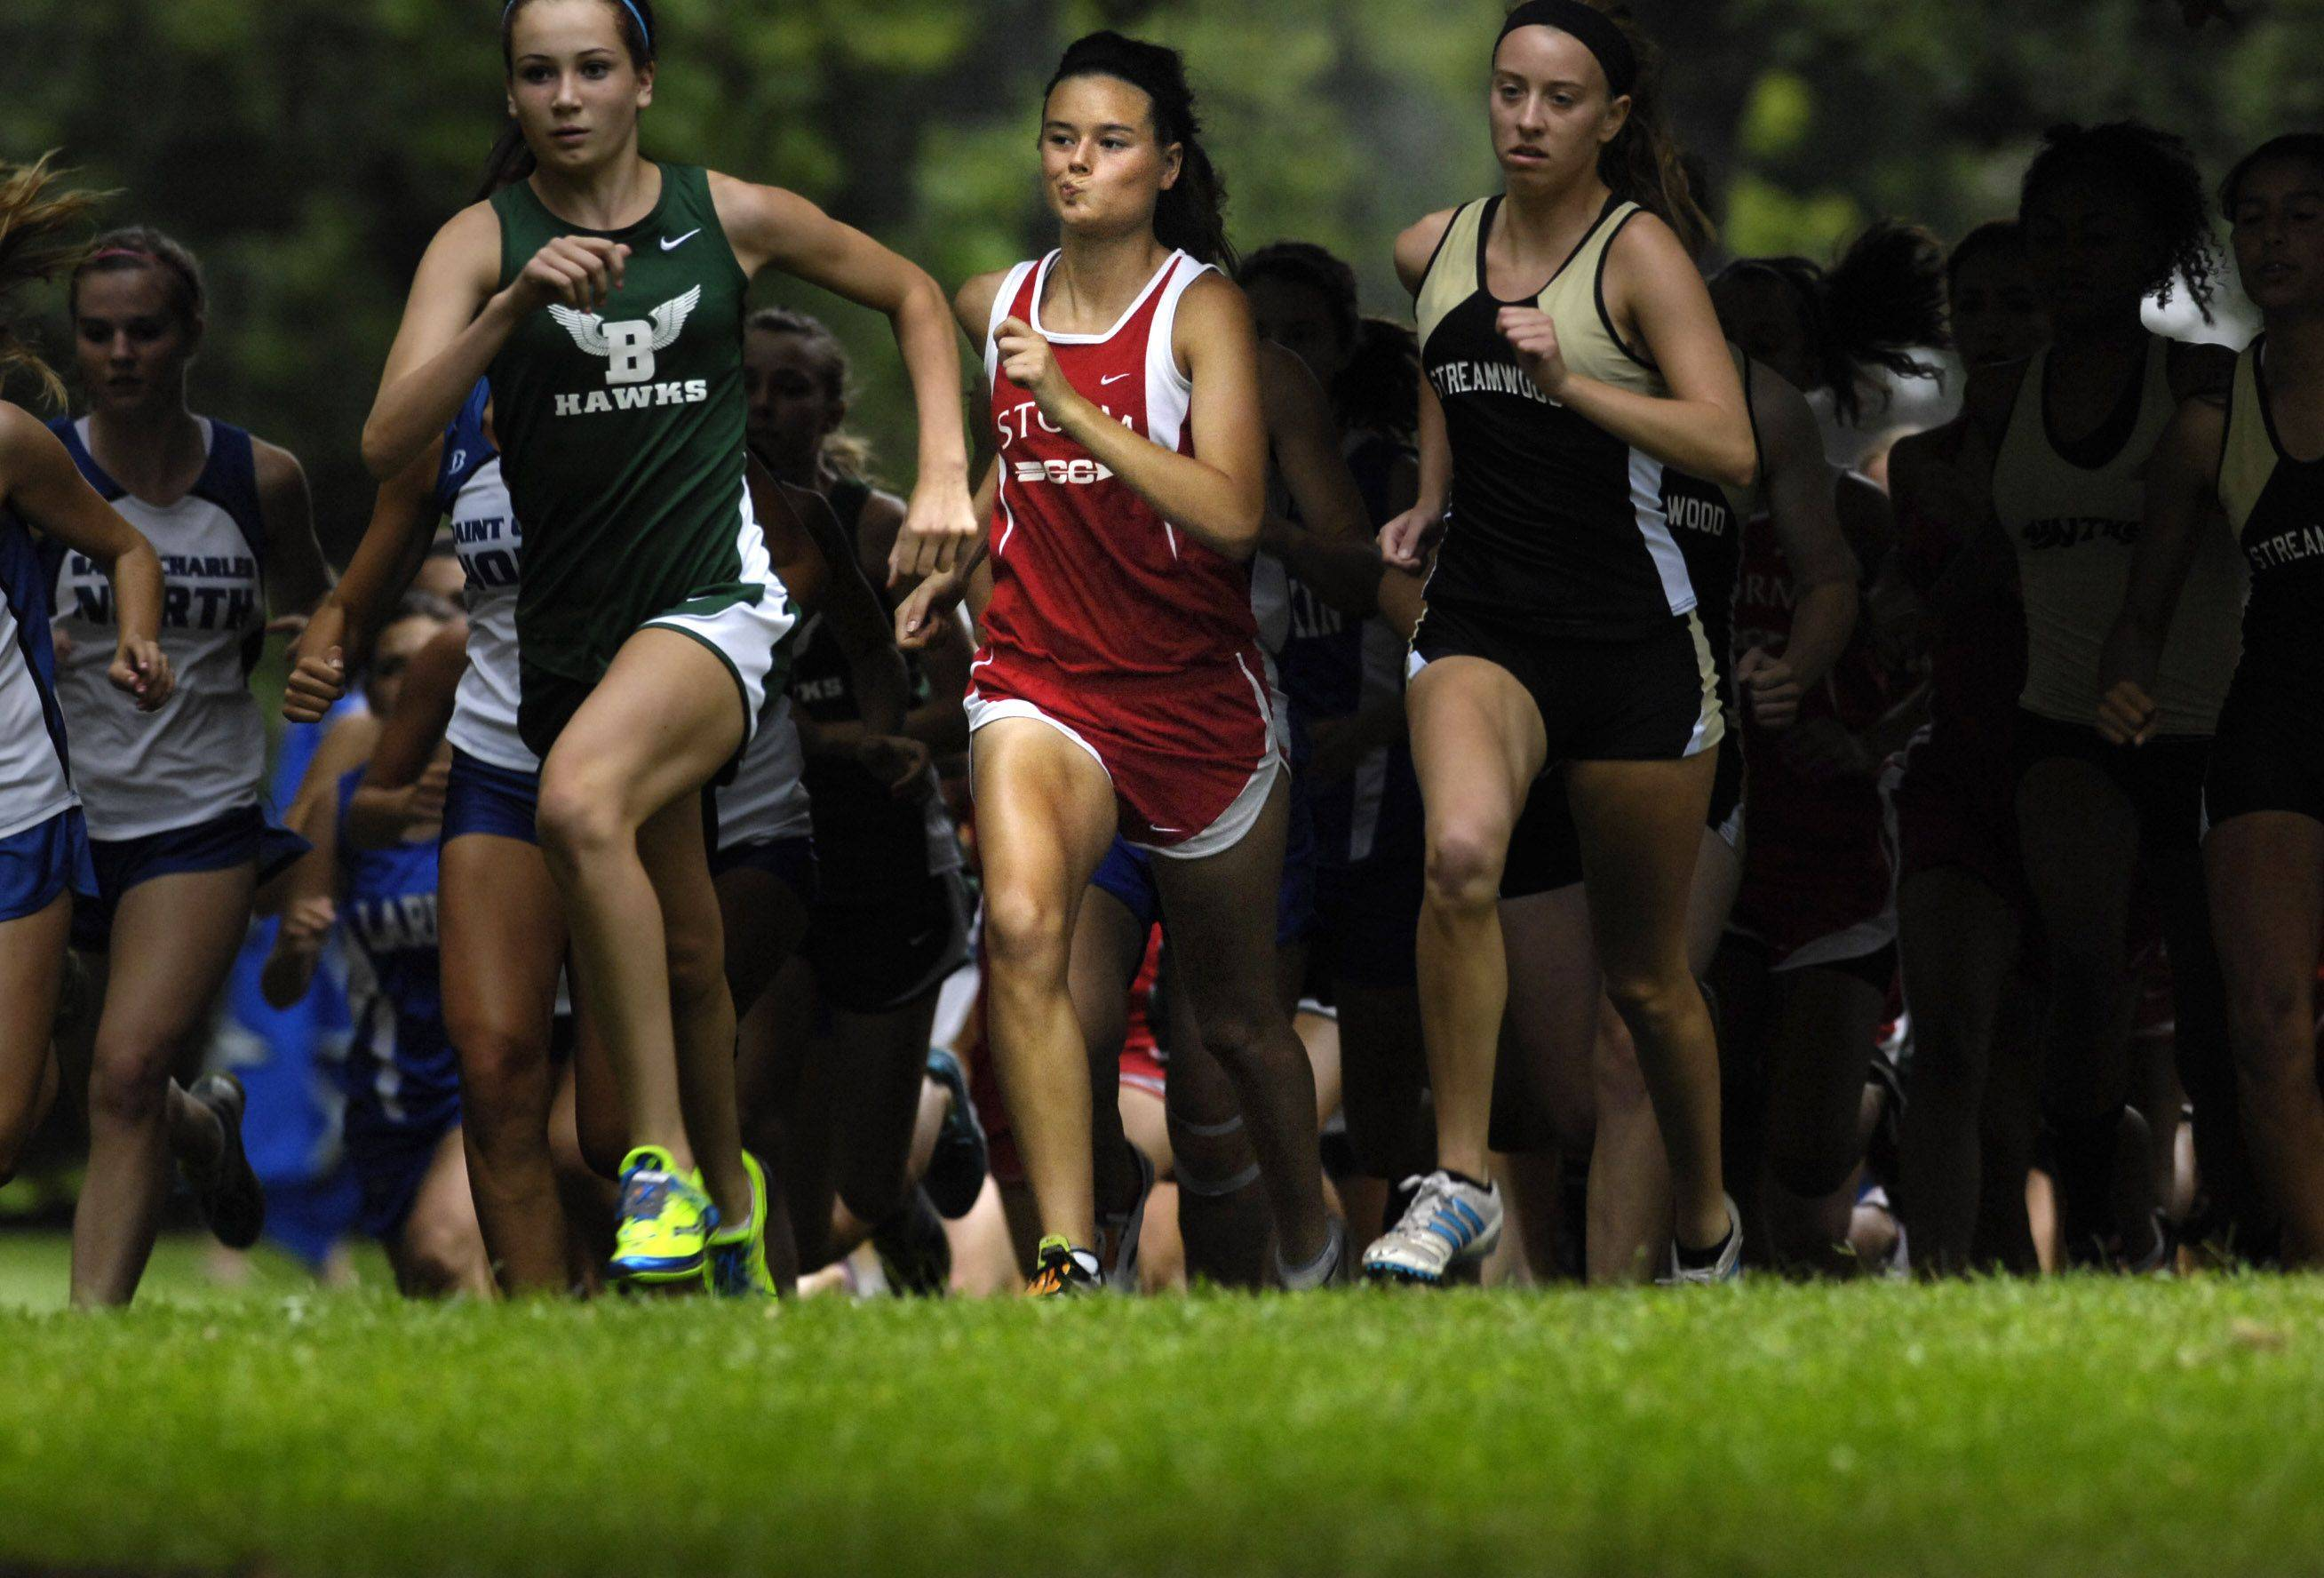 South Elgin's Jordan Tuin, middle, bites her lip as she comes out of the shadows at the start of the Elgin cross country invitational Tuesday at Lords Park. She finished second overall. To her left is Amanda Patterson of Streamwood, who finished fourth, and on her right is Bartlett's Nicole Watkins, who finished fifth overall.